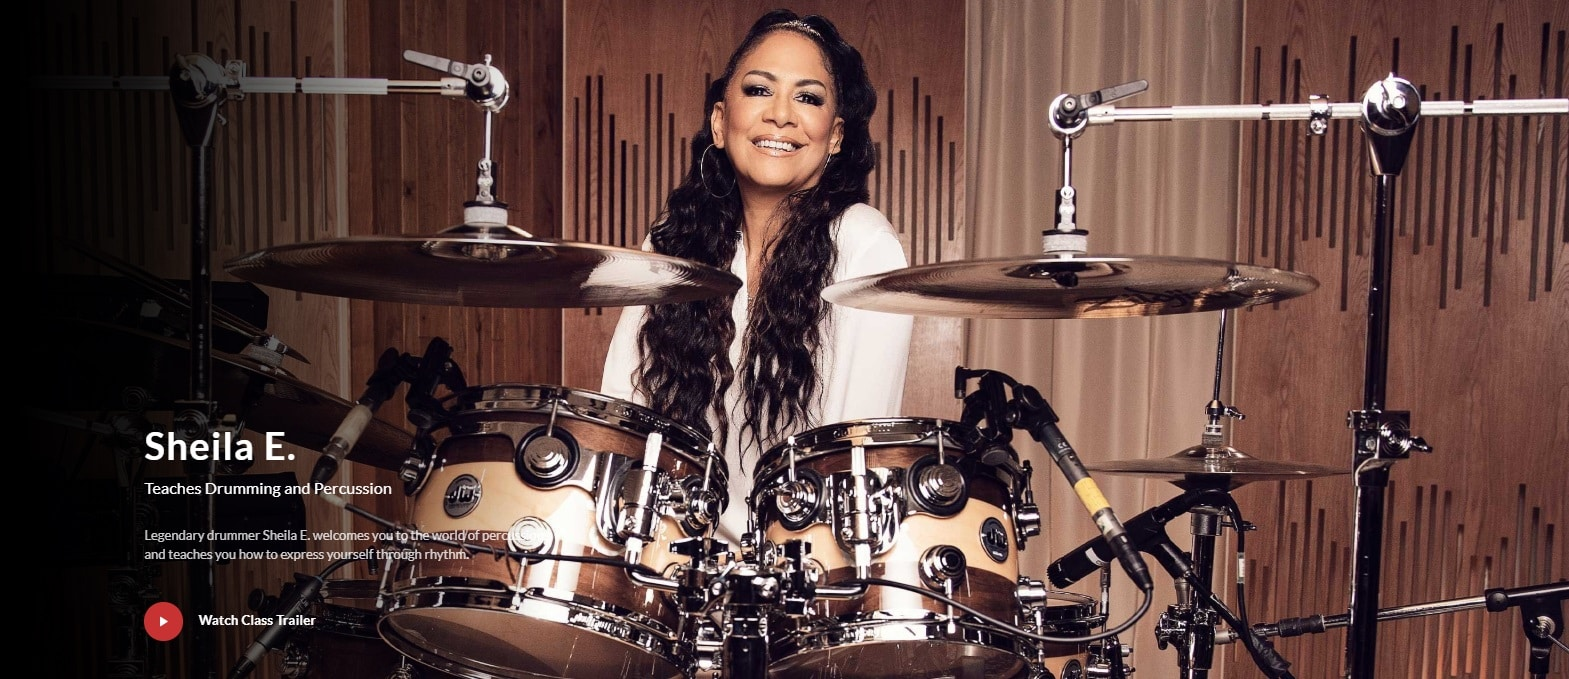 MasterClass Sheila E. Drumming and Percussion Lesson Review